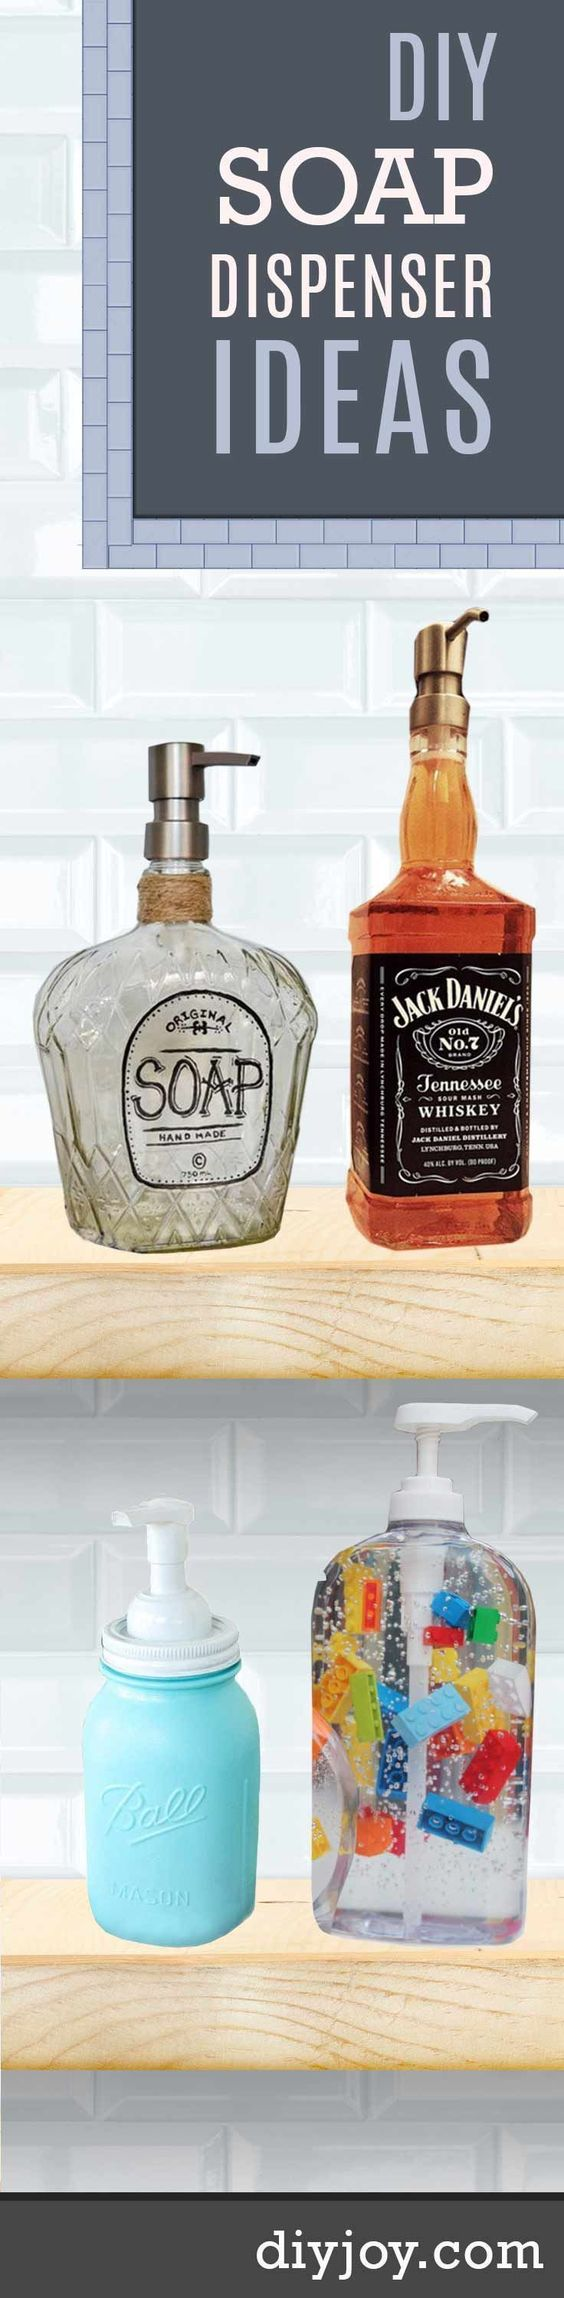 11 Diy Soap Dispensers To Dress Up Your Sink Jack O 39 Connell Daniel O 39 Connell And Soaps